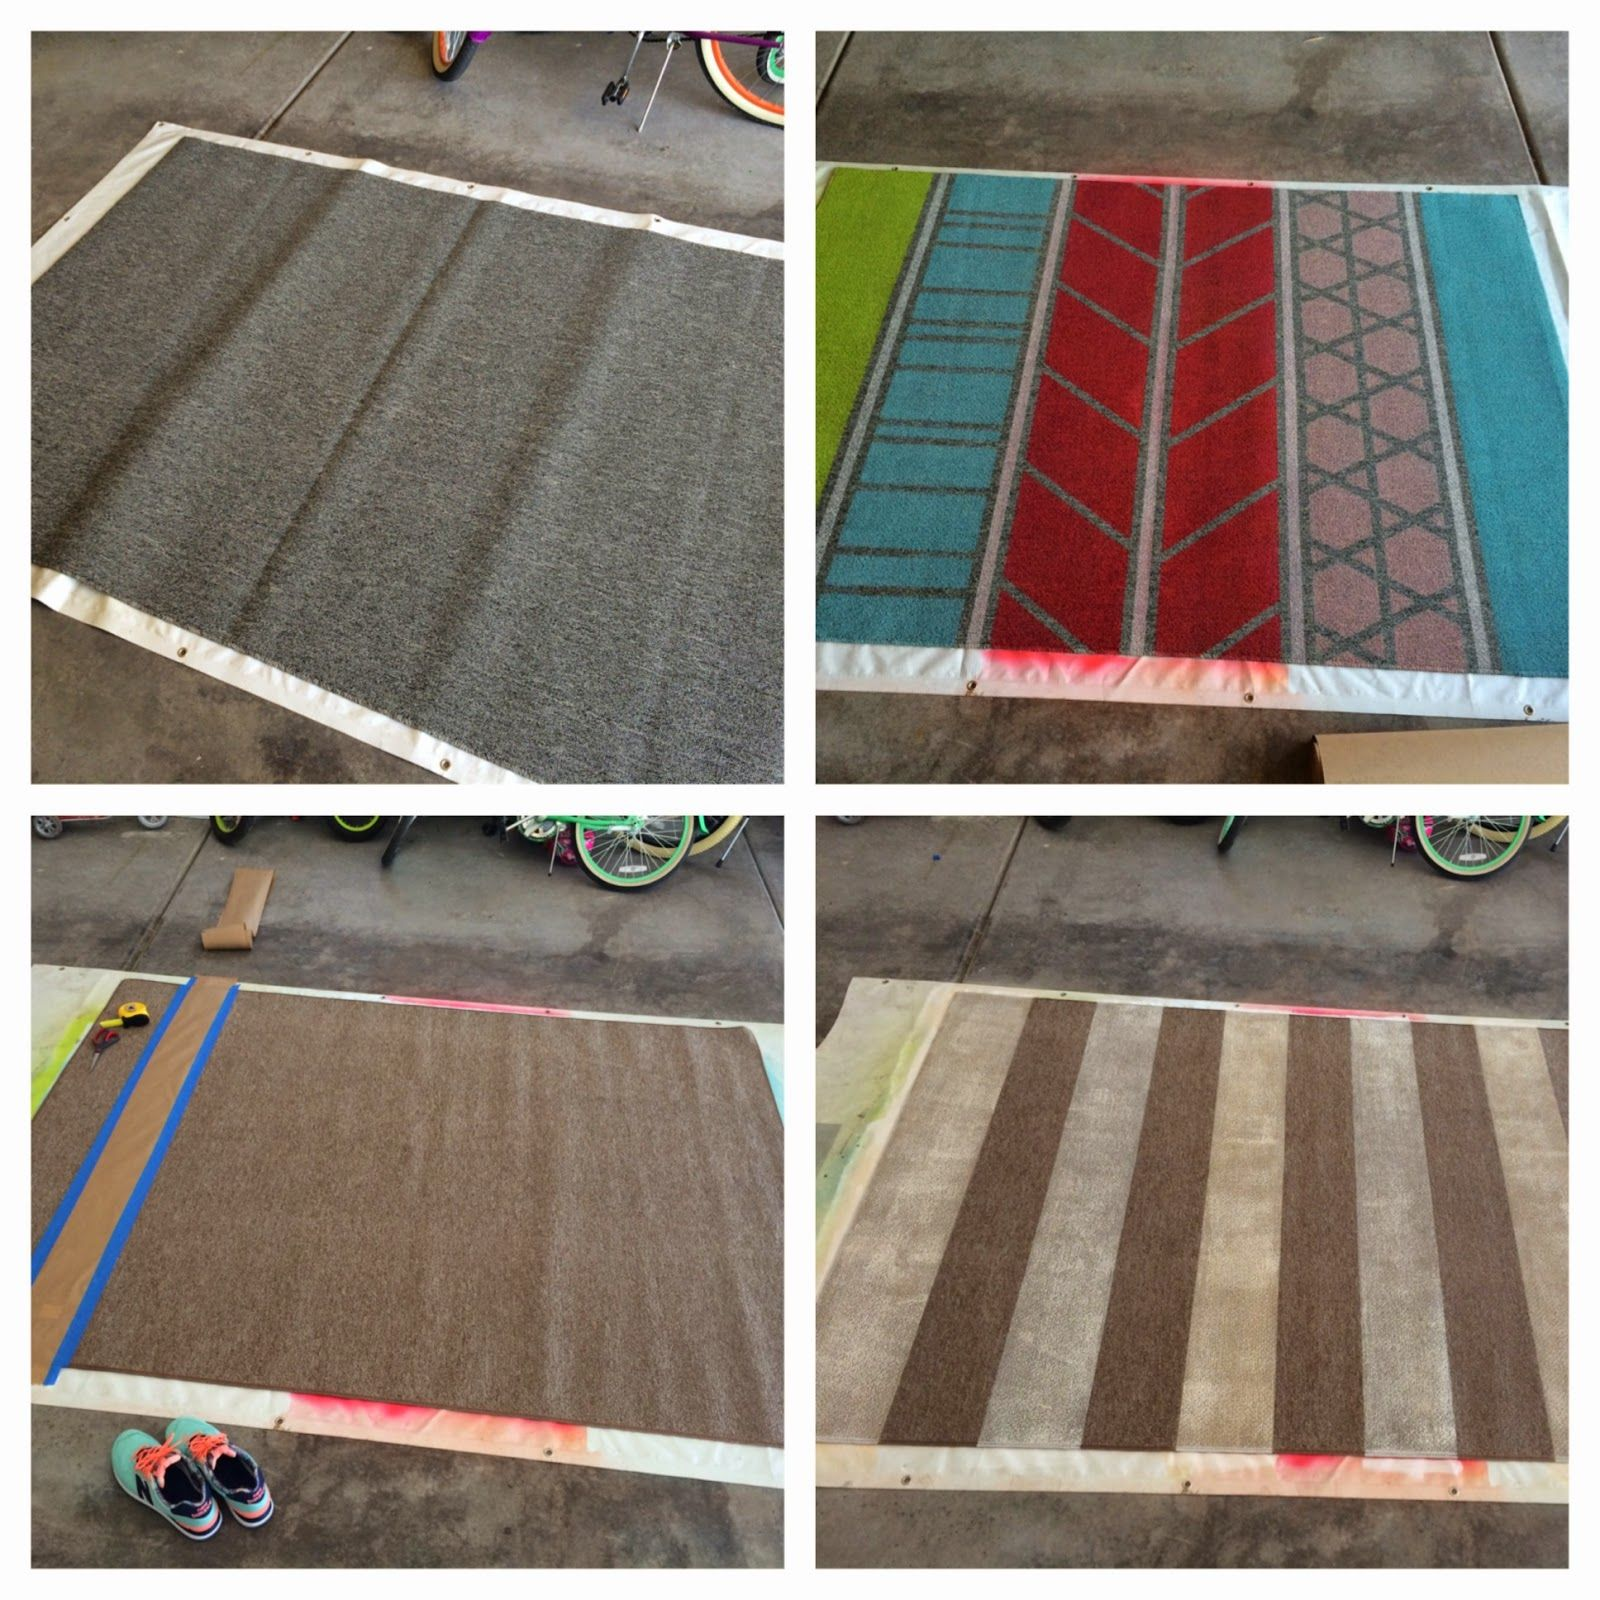 diy repurpose an old rug or make a new one from a cheap rug